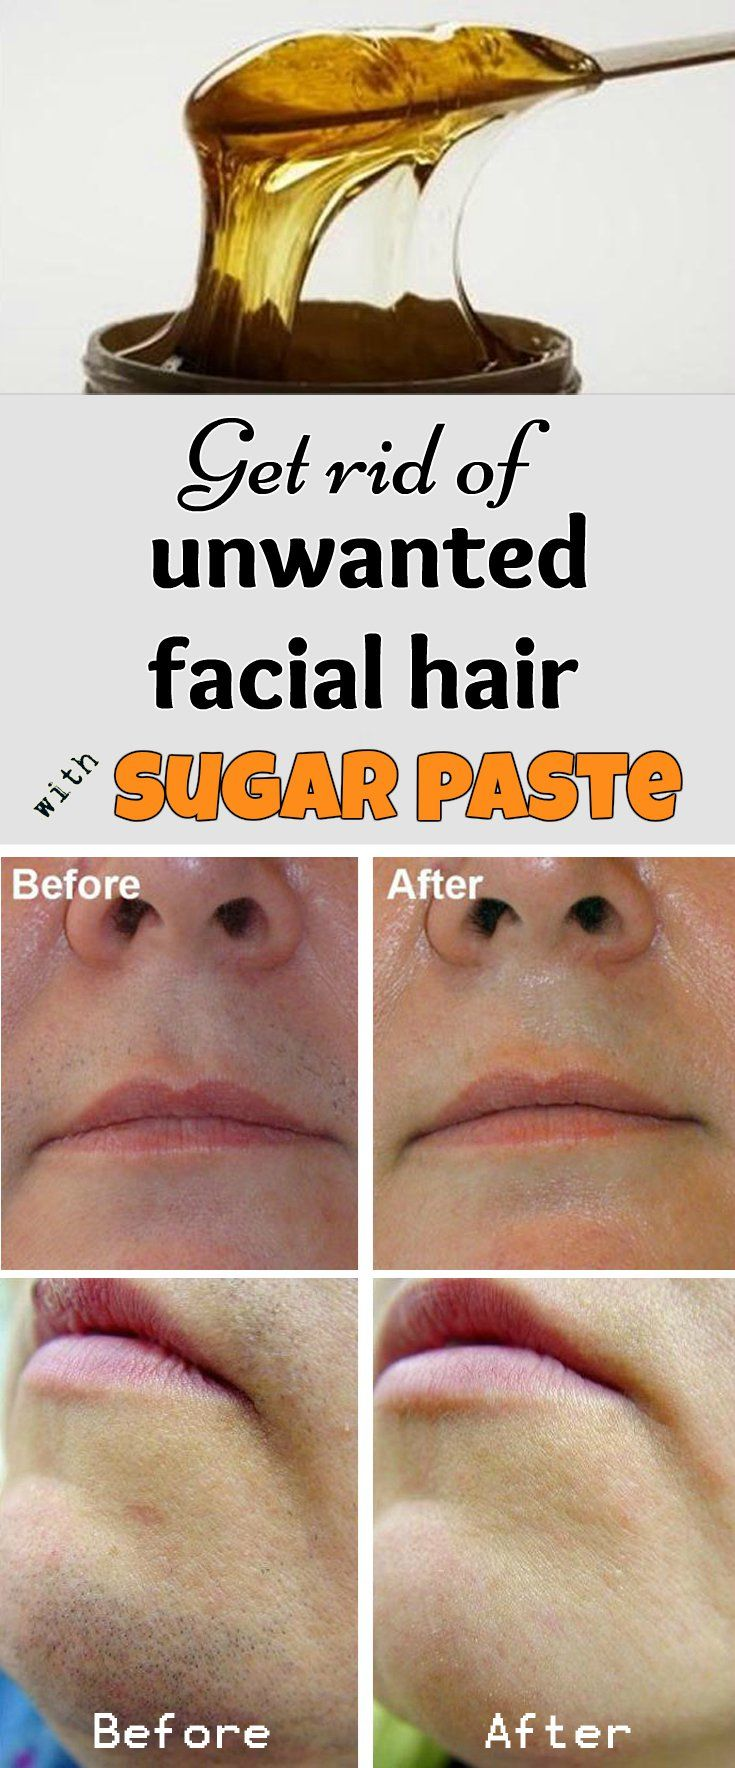 Get rid of unwanted facial hair with sugar paste